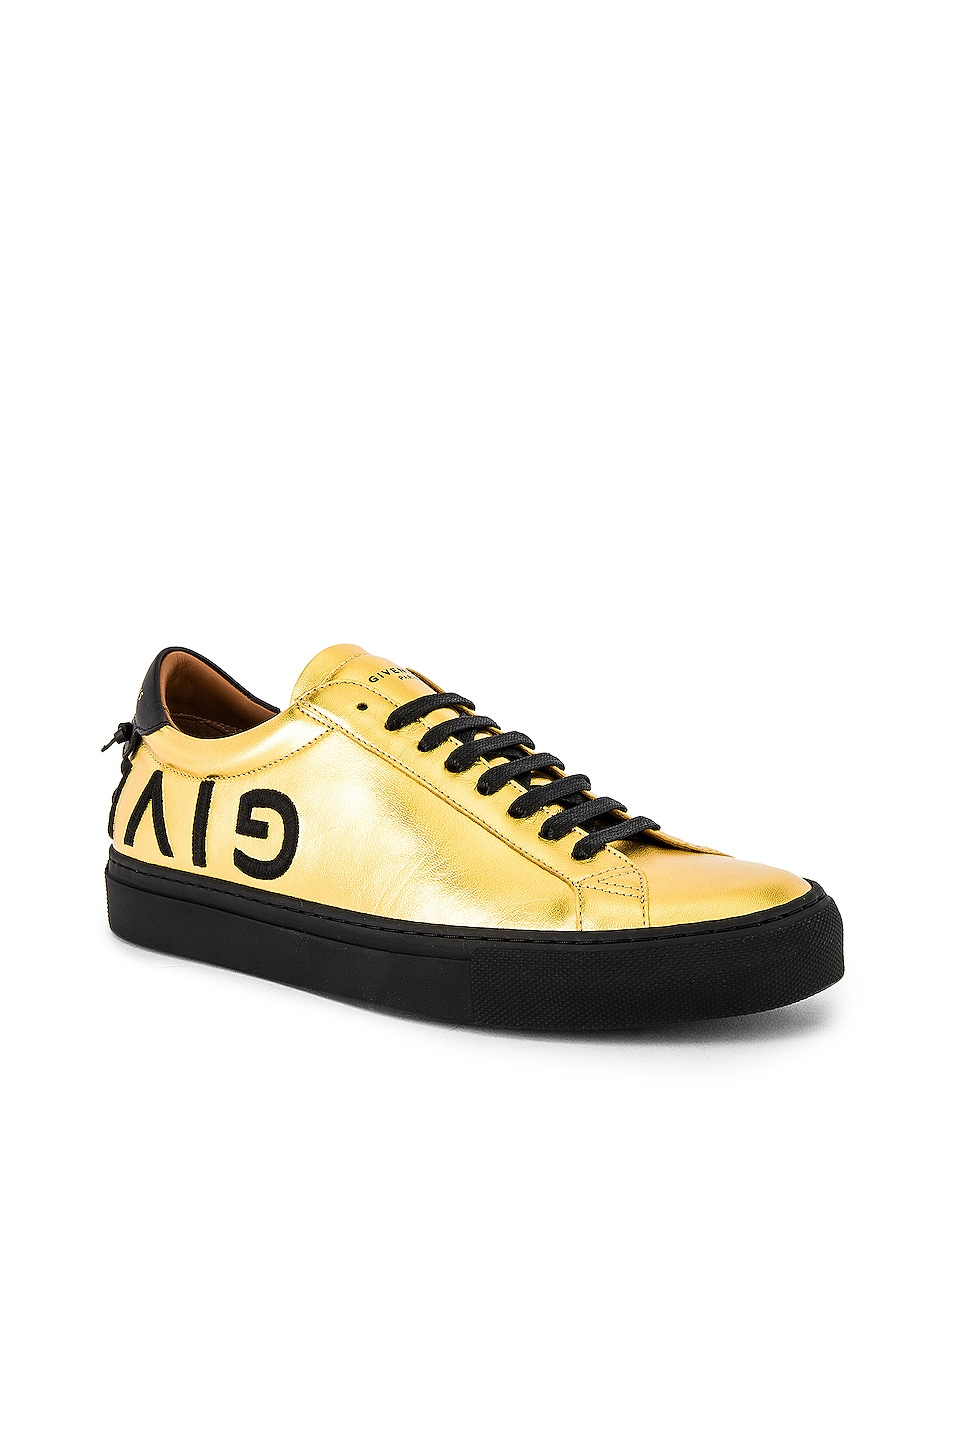 Image 1 of Givenchy Urban Street Low Sneakers in Gold